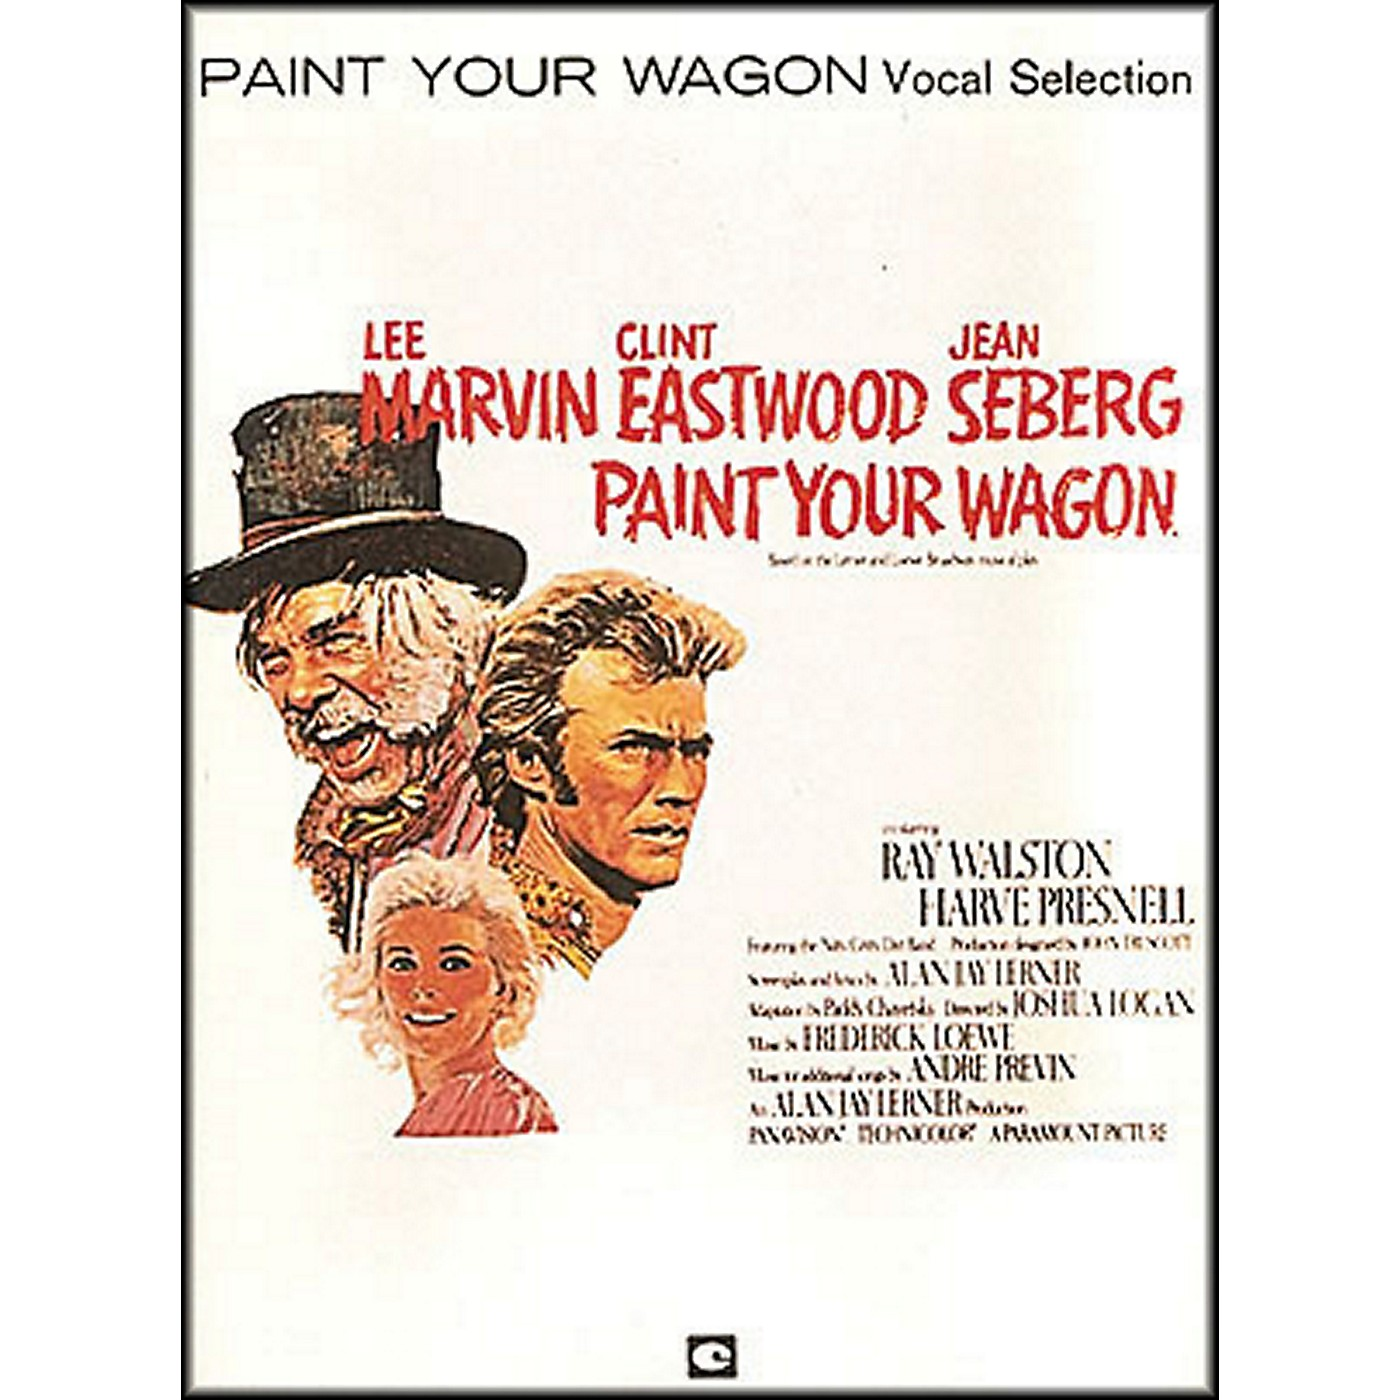 Hal Leonard Paint Your Wagon Vocal Selections arranged for piano, vocal, and guitar (P/V/G) thumbnail